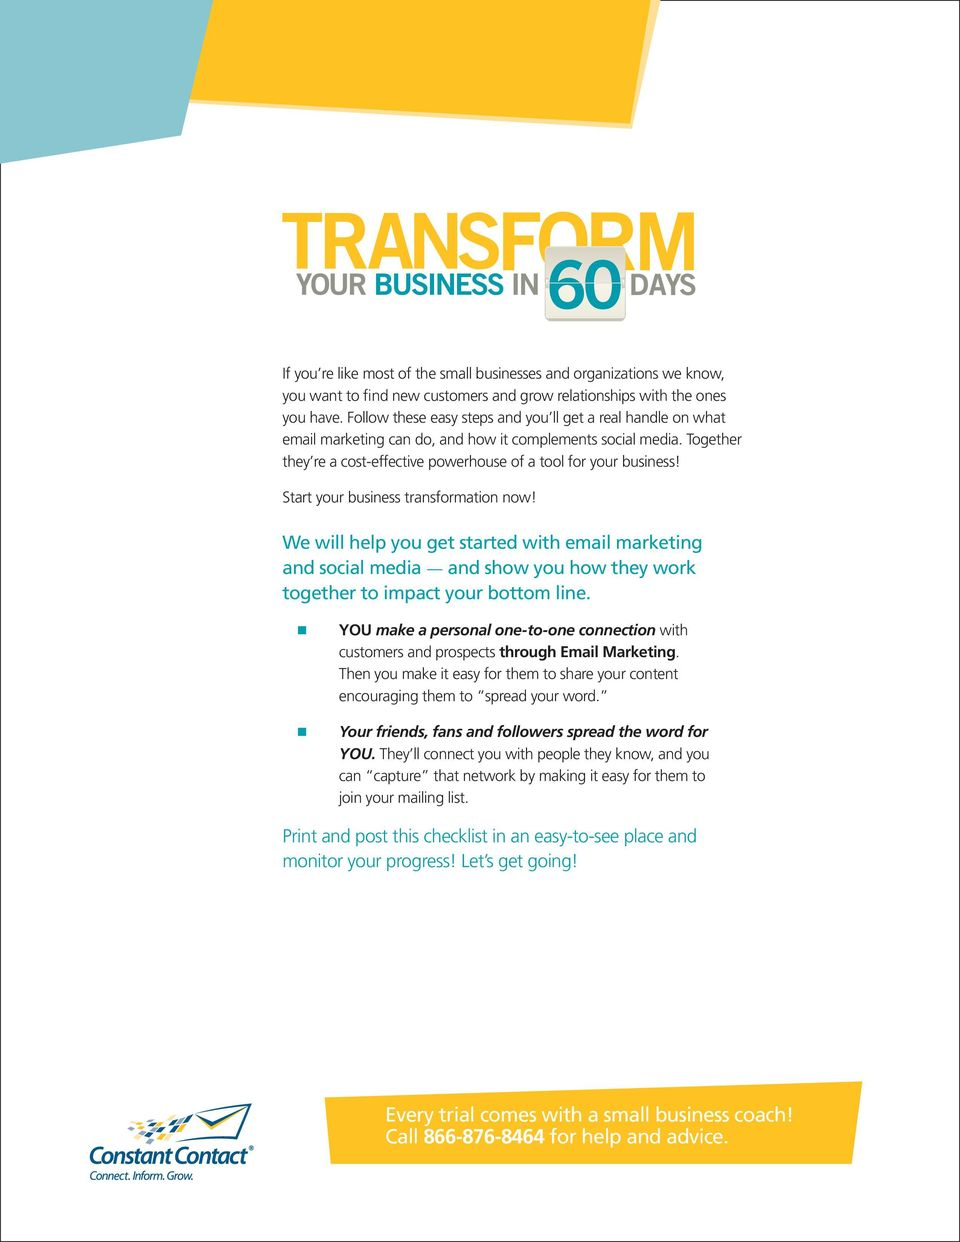 Start your business transformation now! We will help you get started with email marketing and social media and show you how they work together to impact your bottom line.